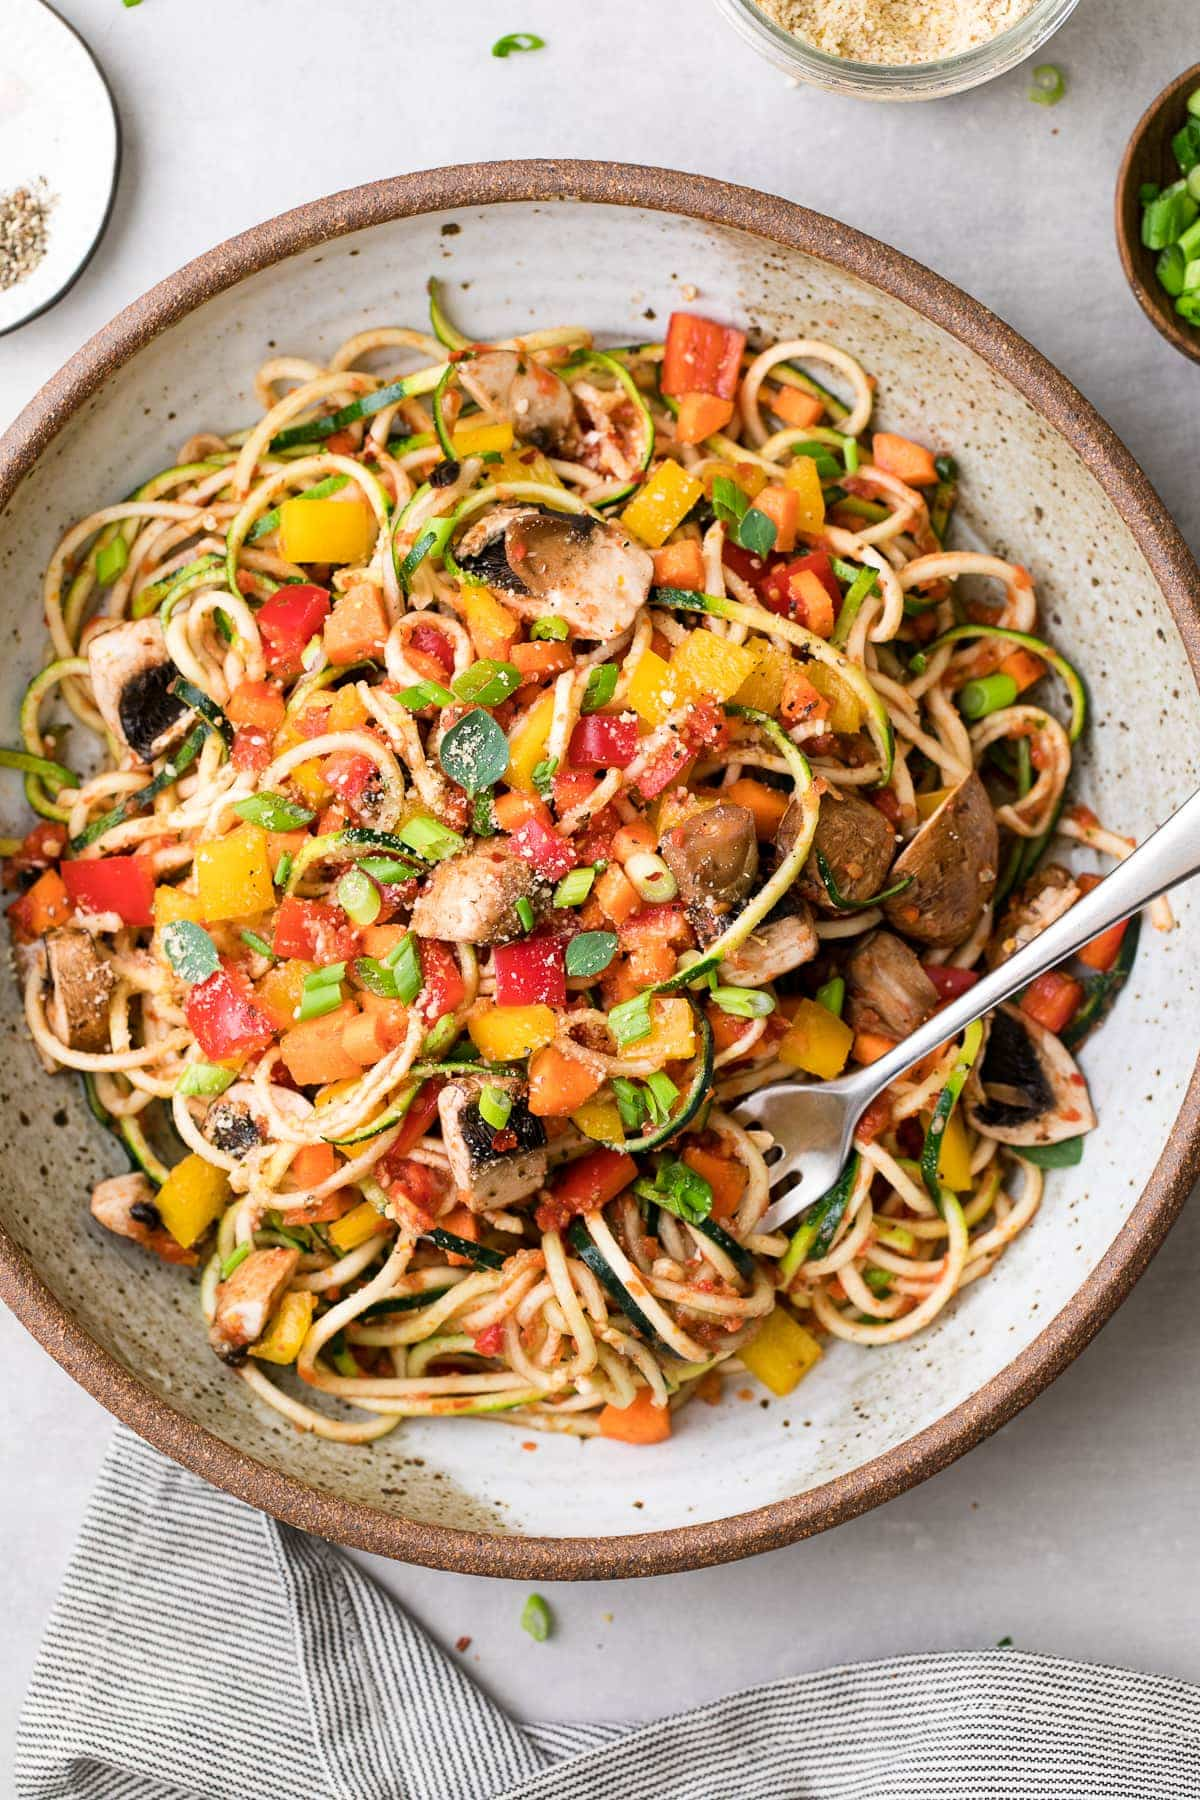 top down view of plated raw spaghetti + vegetable pasta with items surrounding.